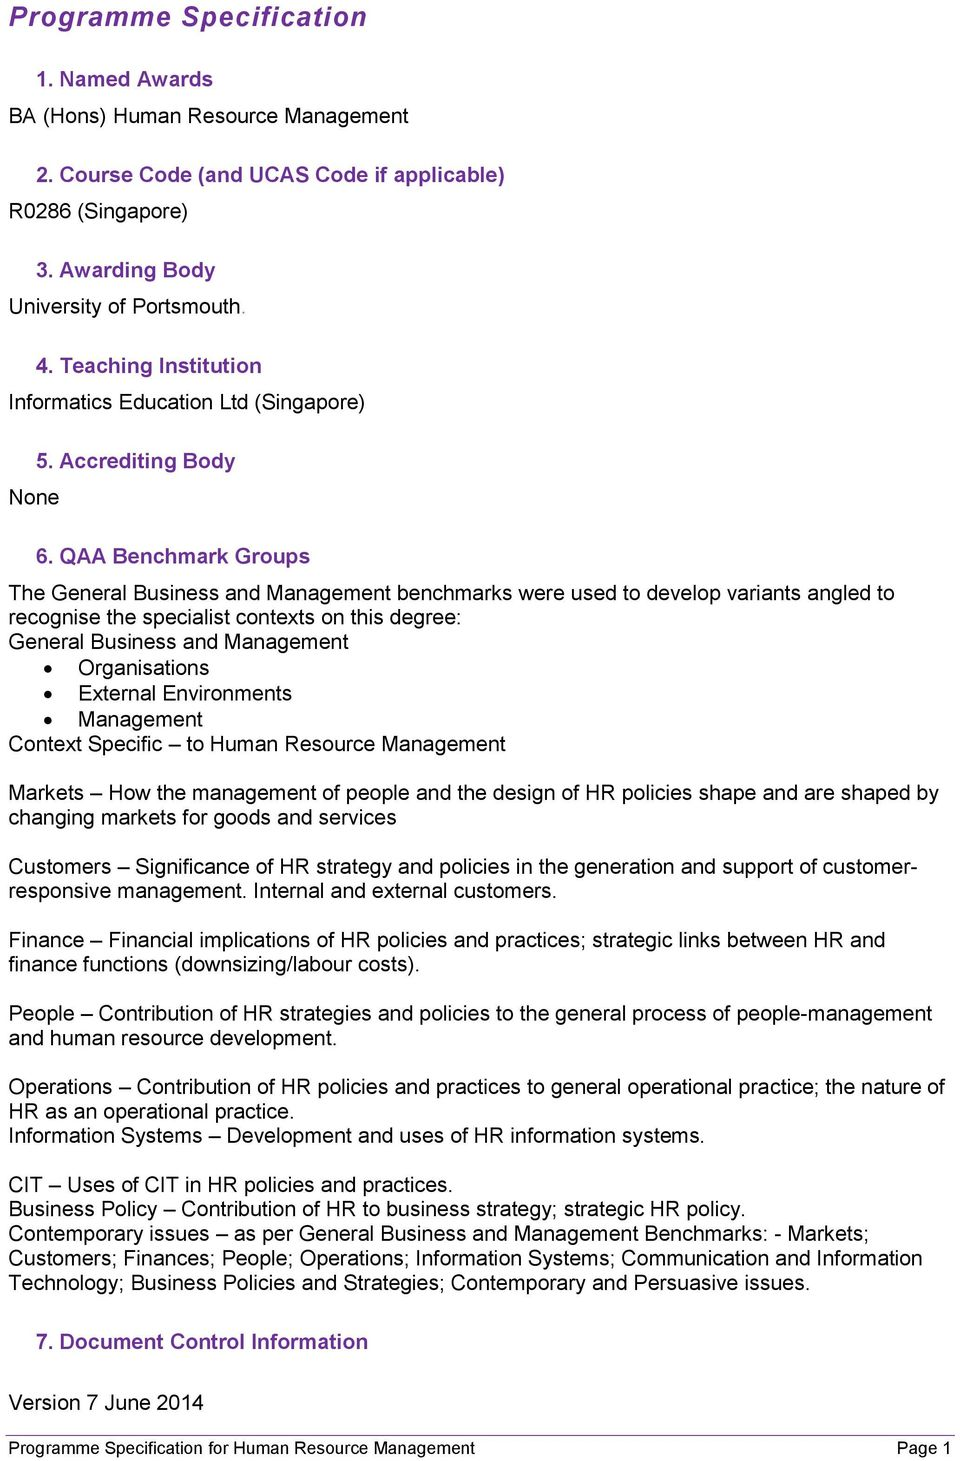 QAA Benchmark Groups The General Business and Management benchmarks were used to develop variants angled to recognise the specialist contexts on this degree: General Business and Management